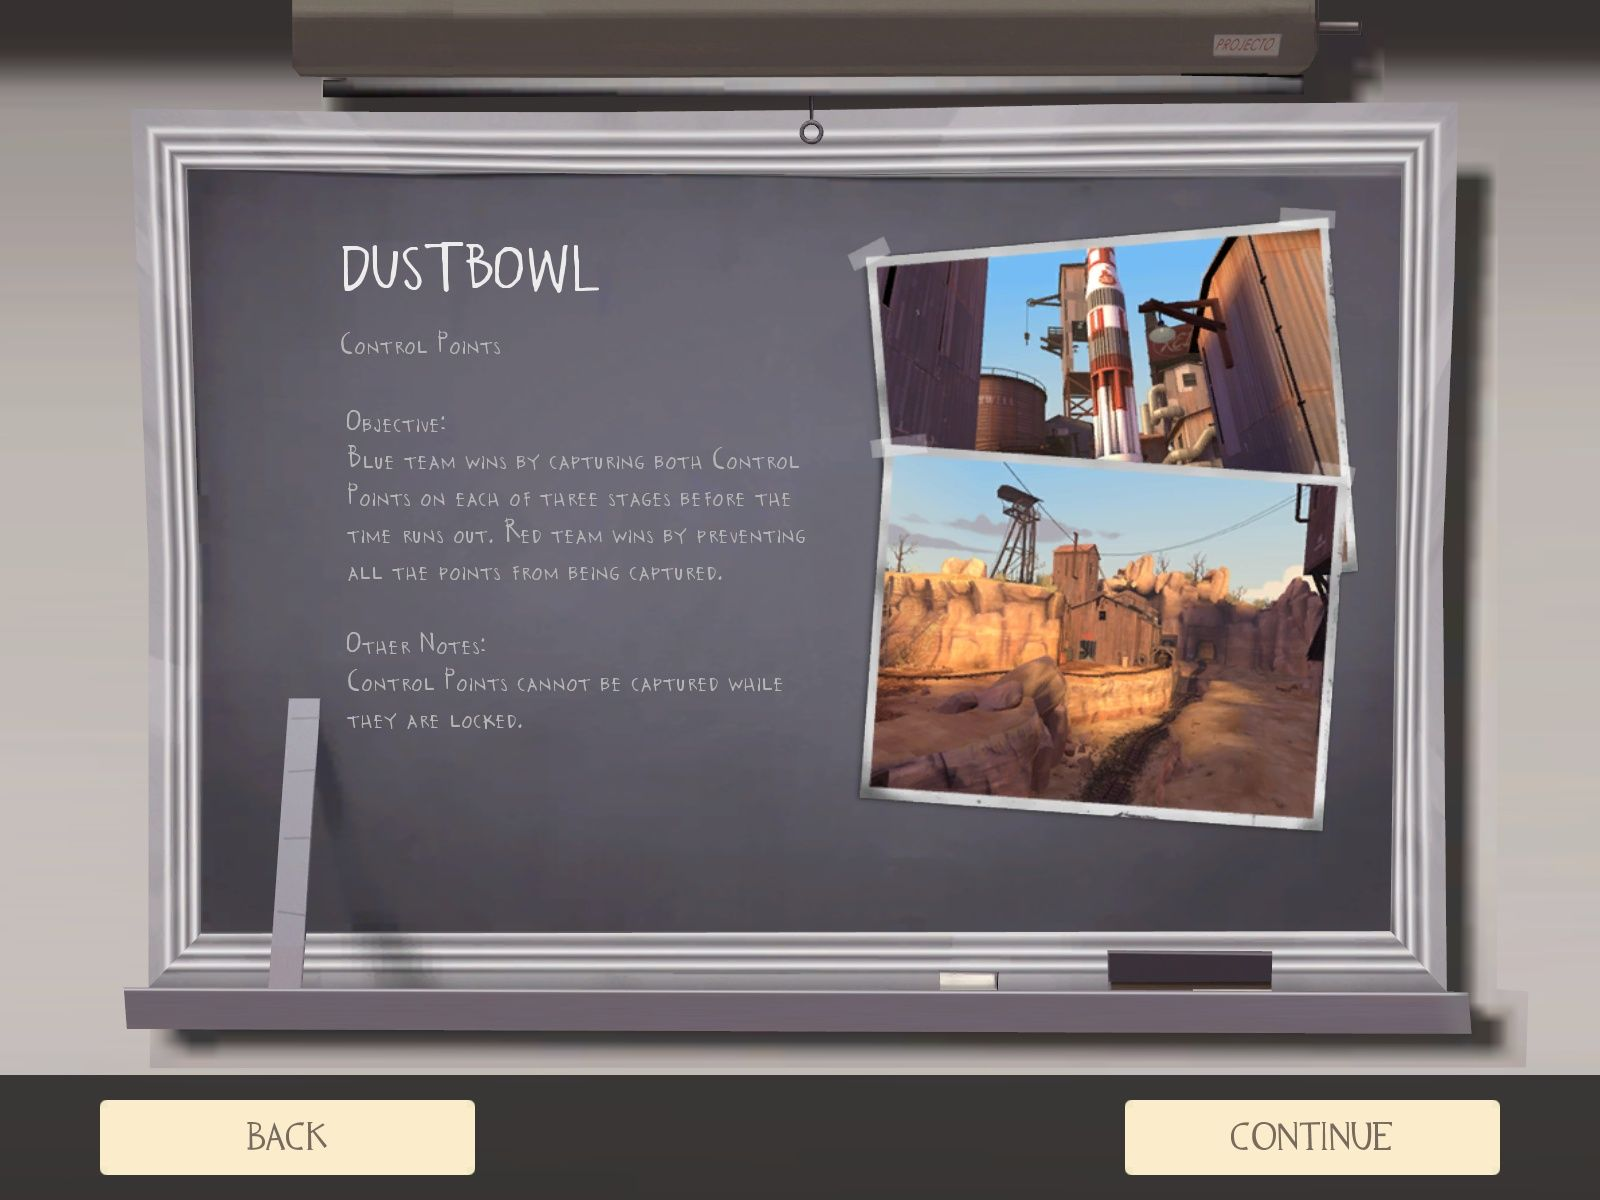 Team Fortress 2 Windows Information about the current map.